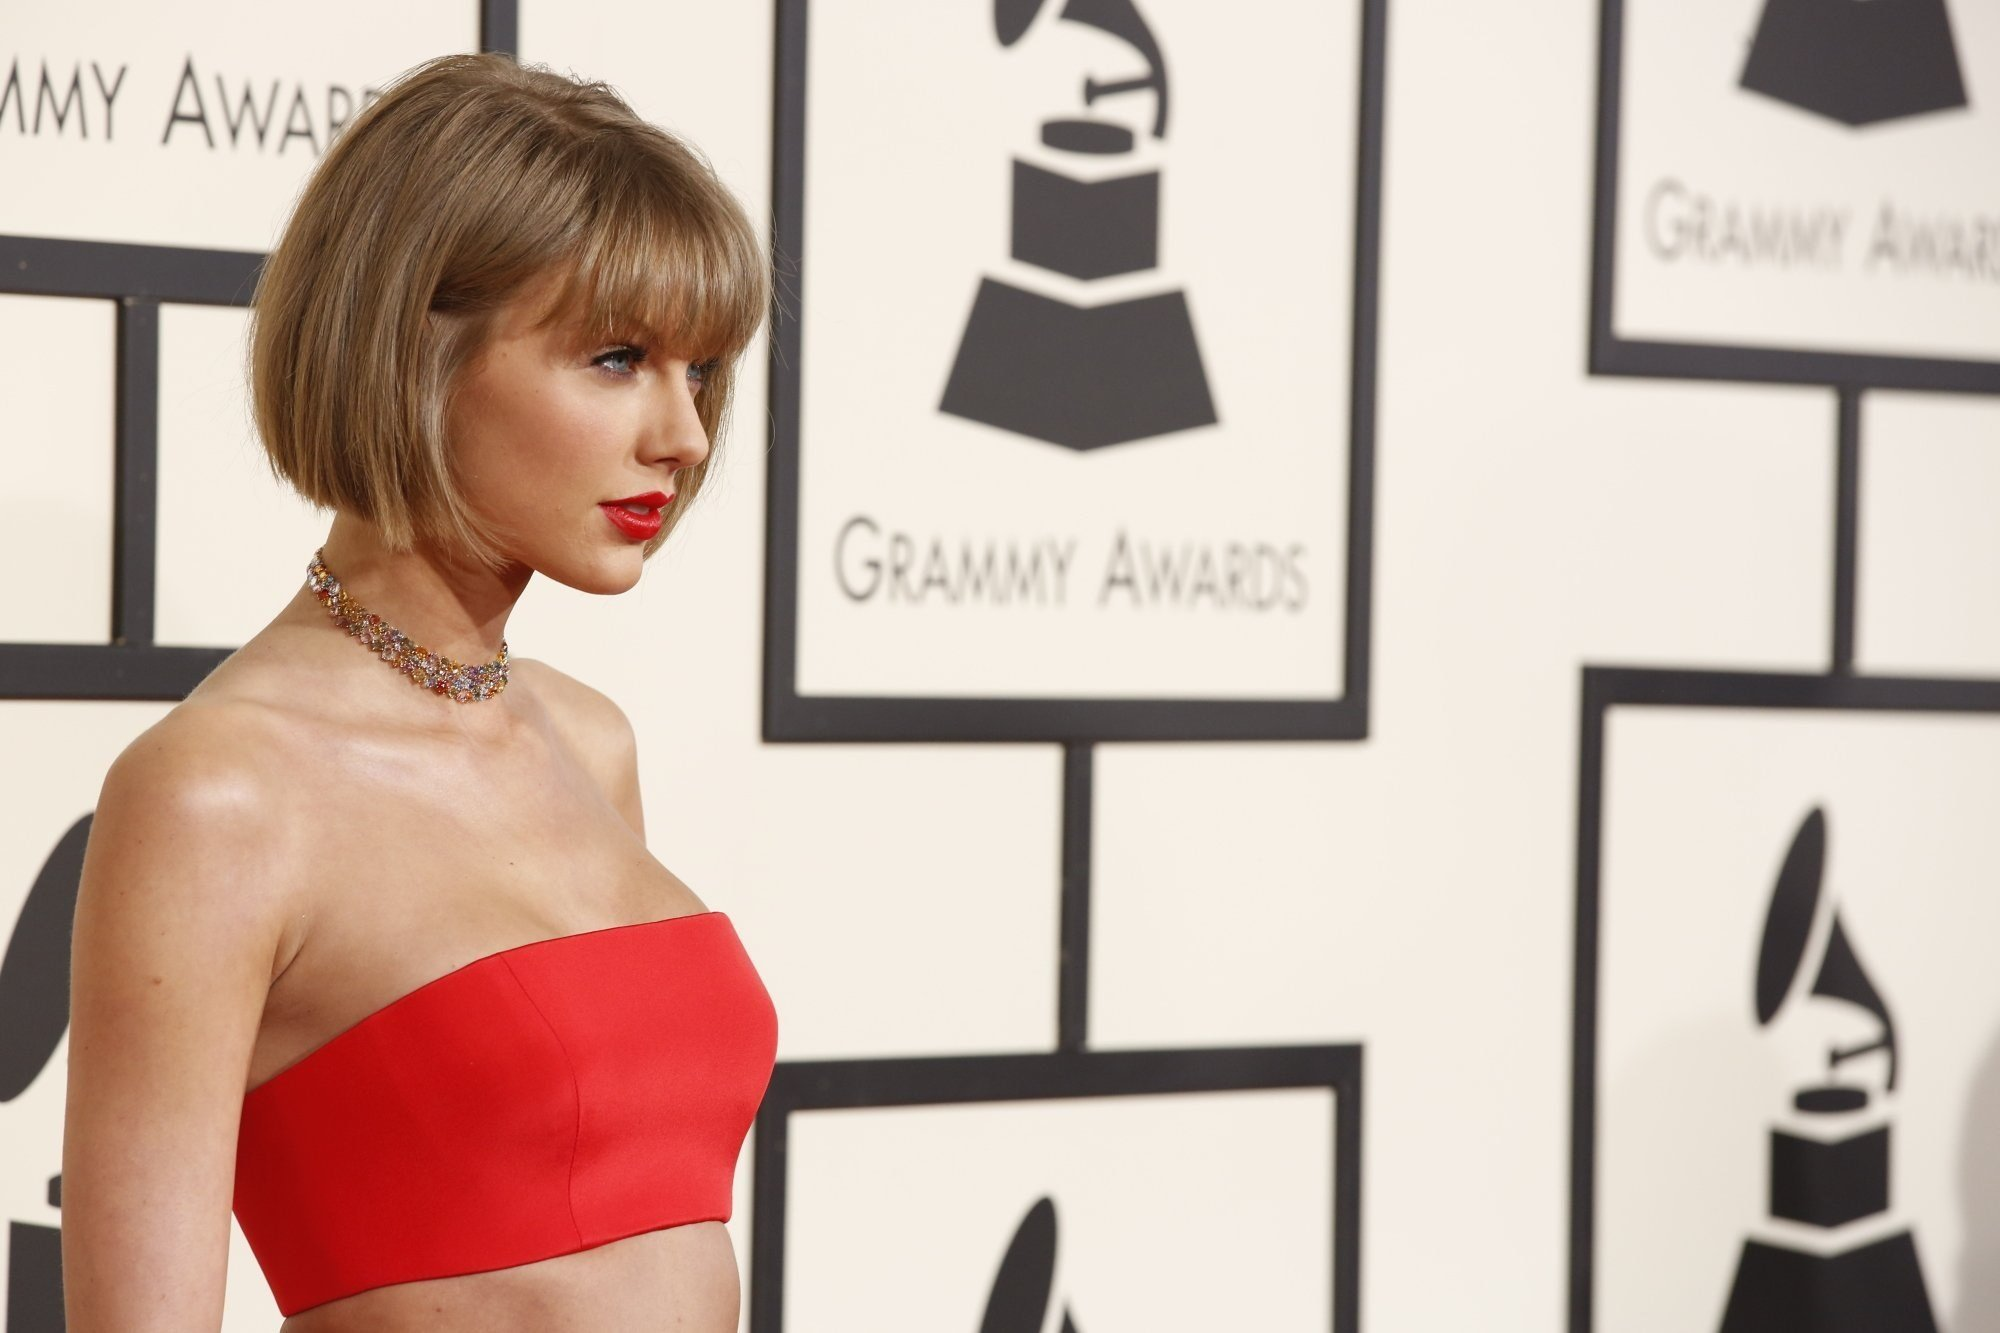 The superstar singer is expected to testify in a civil case filed by a Denver disc jokey who claims he lost his job after Swift accused him of groping her backstage at one of her concerts in 2013. Pictured is Swift on the Red Carpet at The 58th Annual...